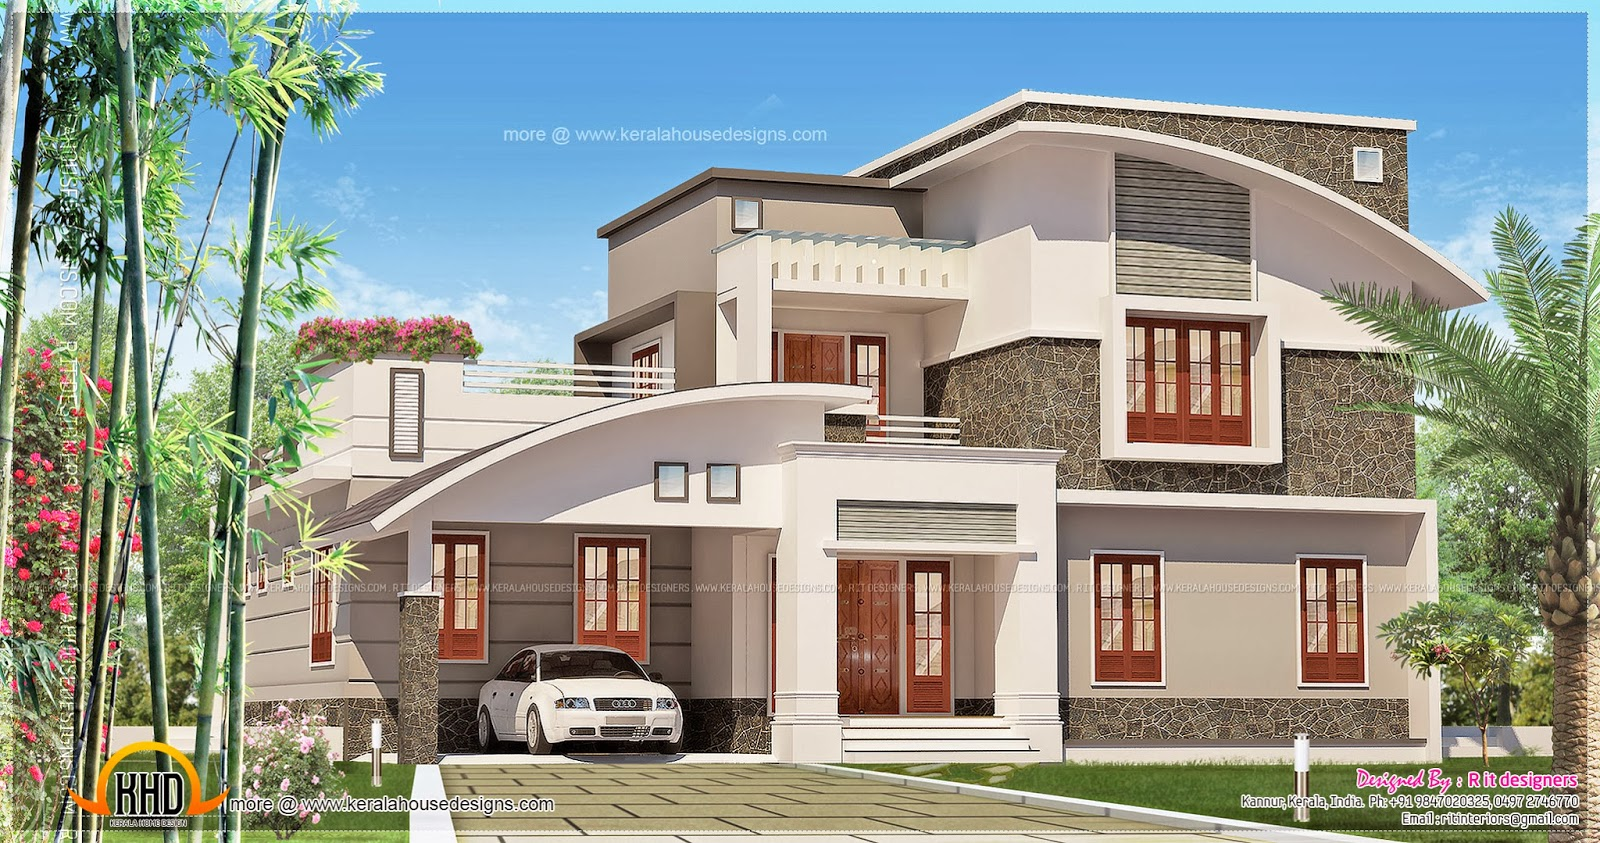 3 bedroom contemporary mix house exterior kerala home for Kerala home style 3 bedroom